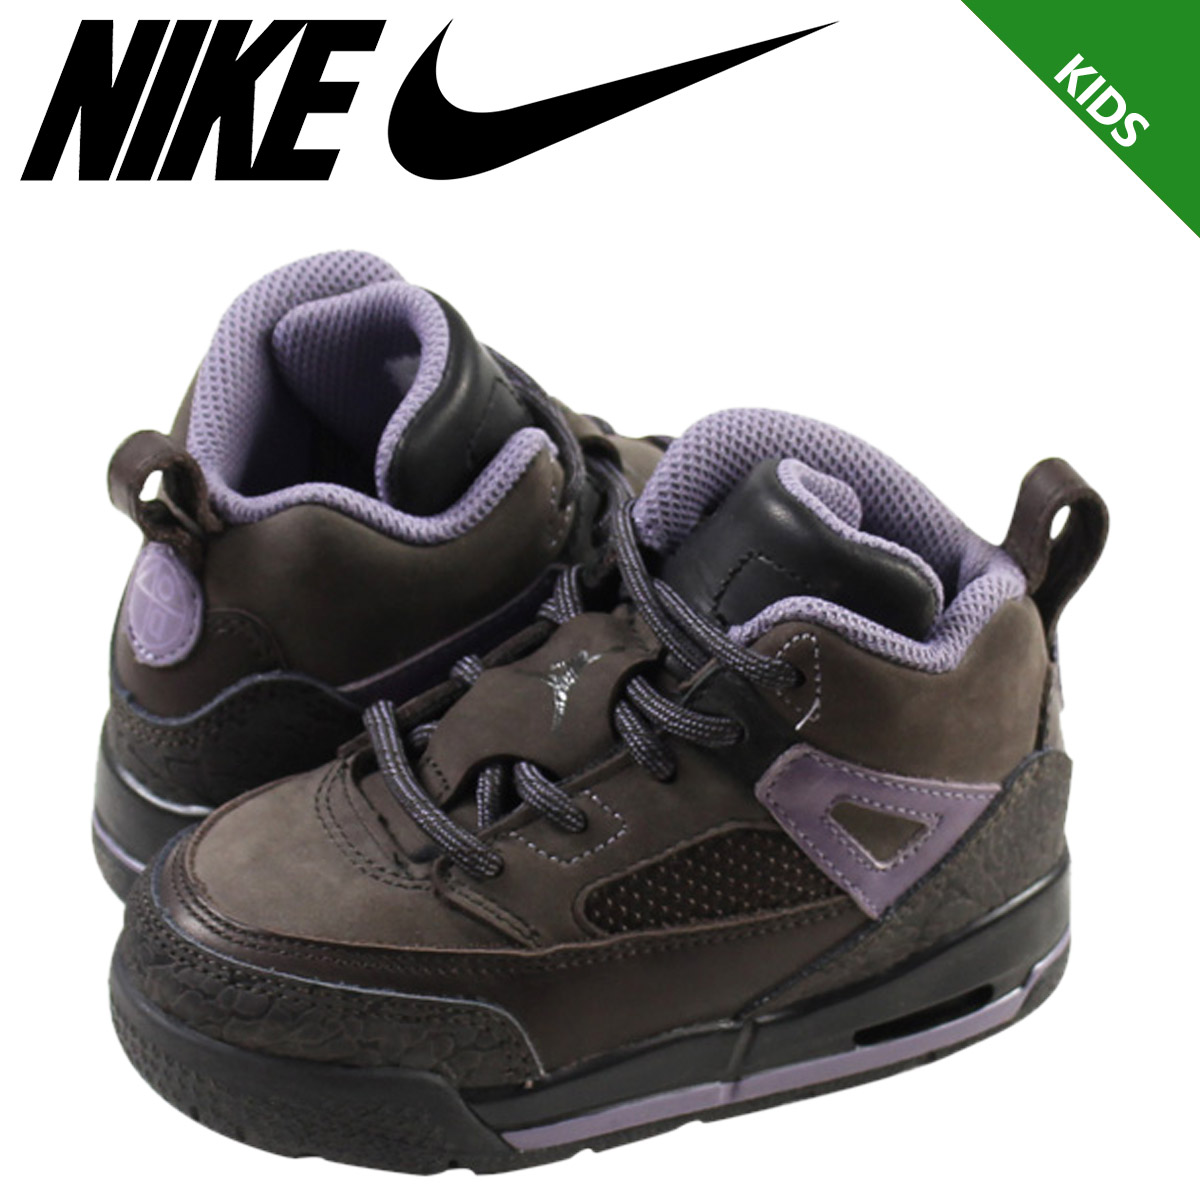 sale retailer 067ef bc210 NIKE Nike Air Jordan sneakers baby kids AIR JORDAN WINTERIZED SPIZIKE TD  Air Jordan spy Zeke 414,841-201 shoes brown